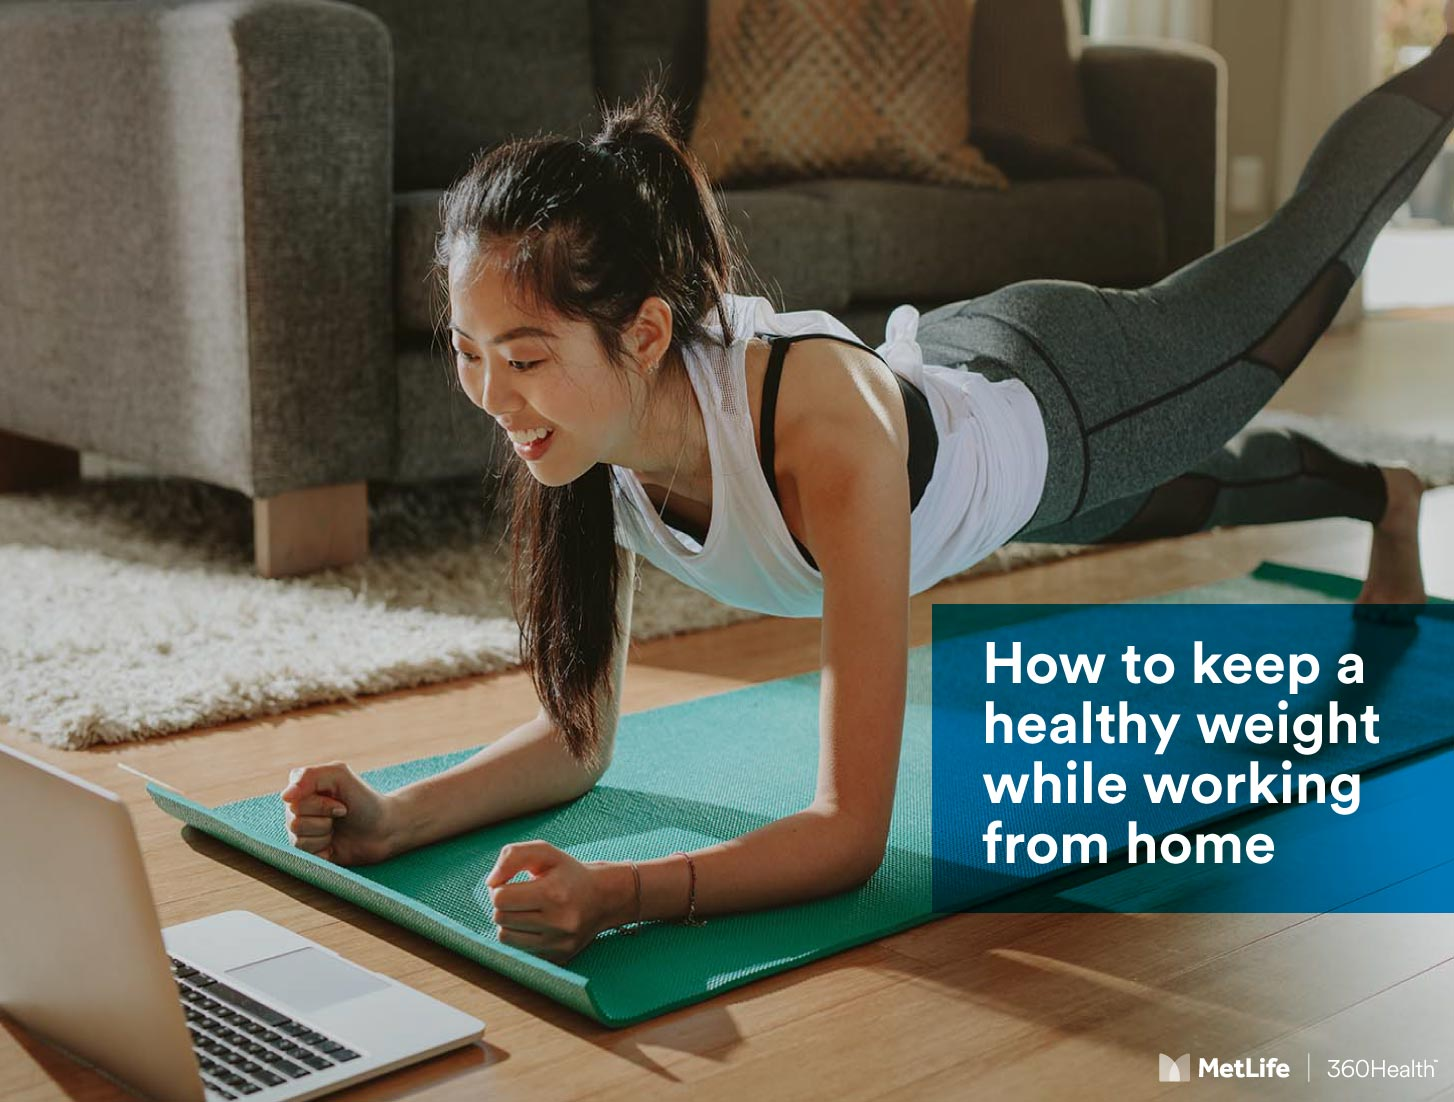 How to keep a healthy weight while working from home